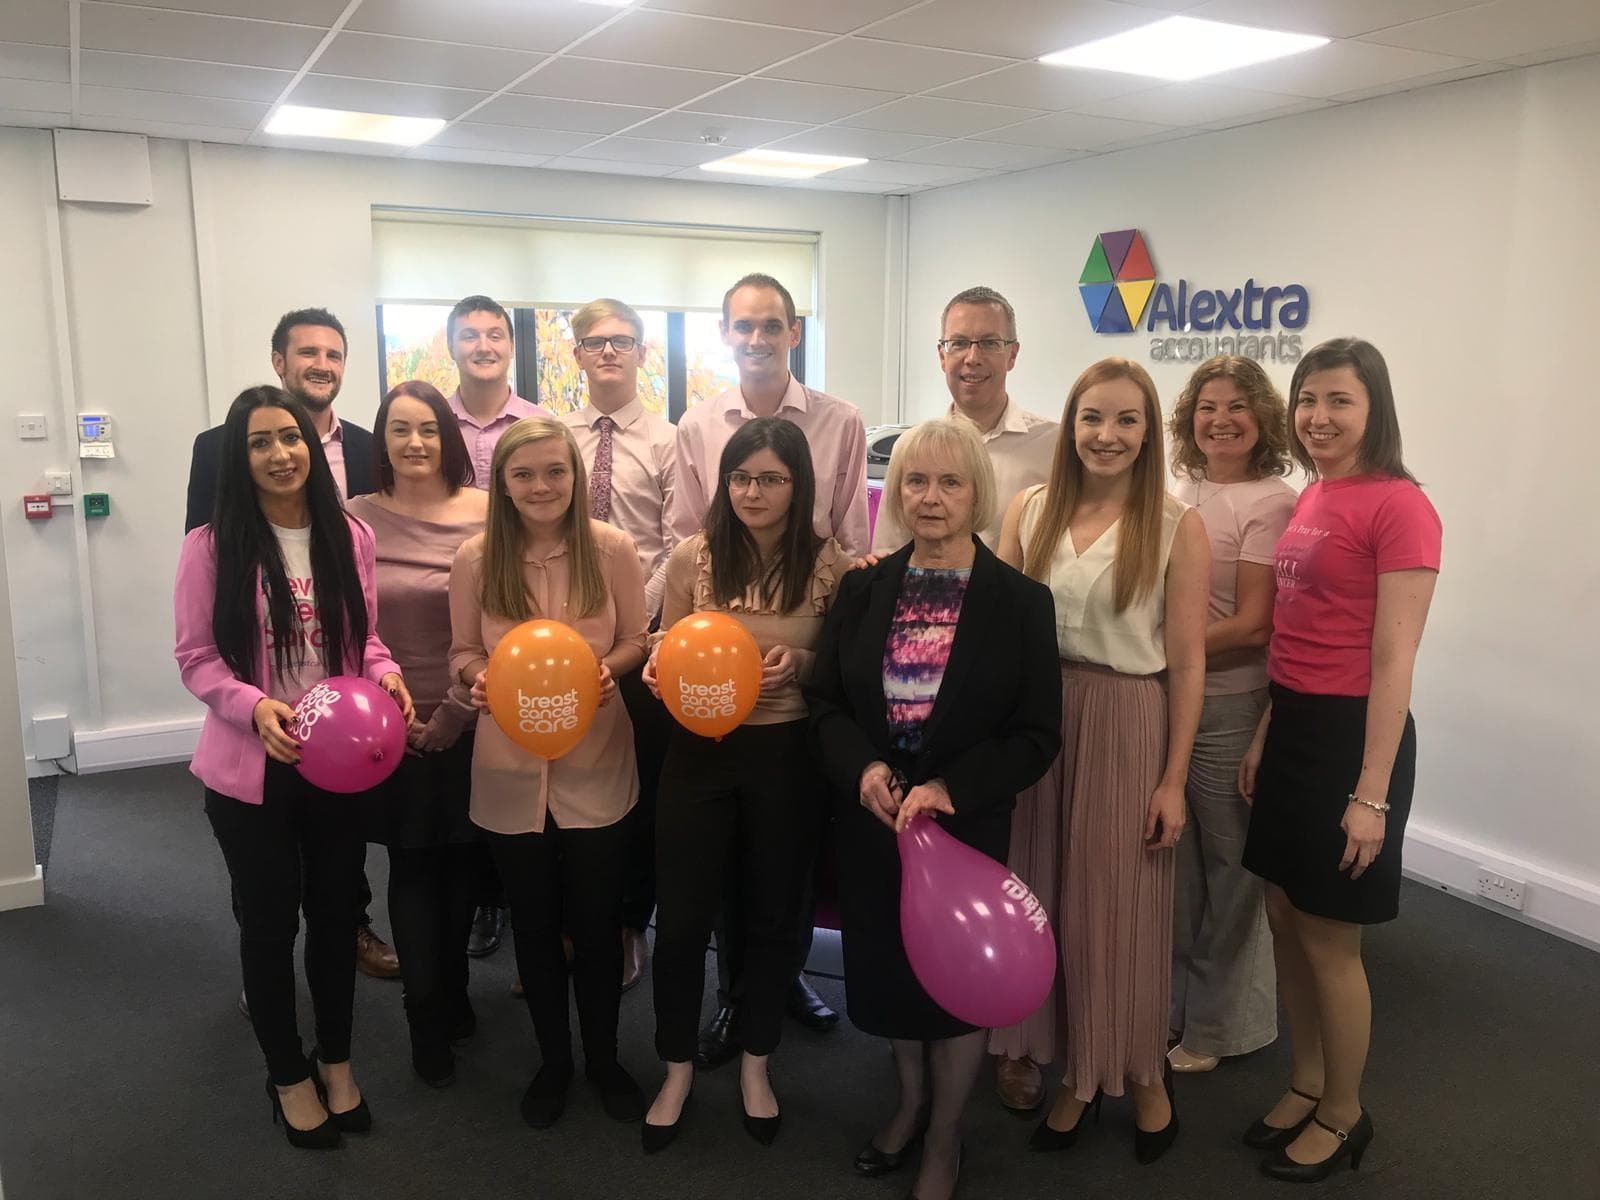 The Alextra Team Support Wear It Pink